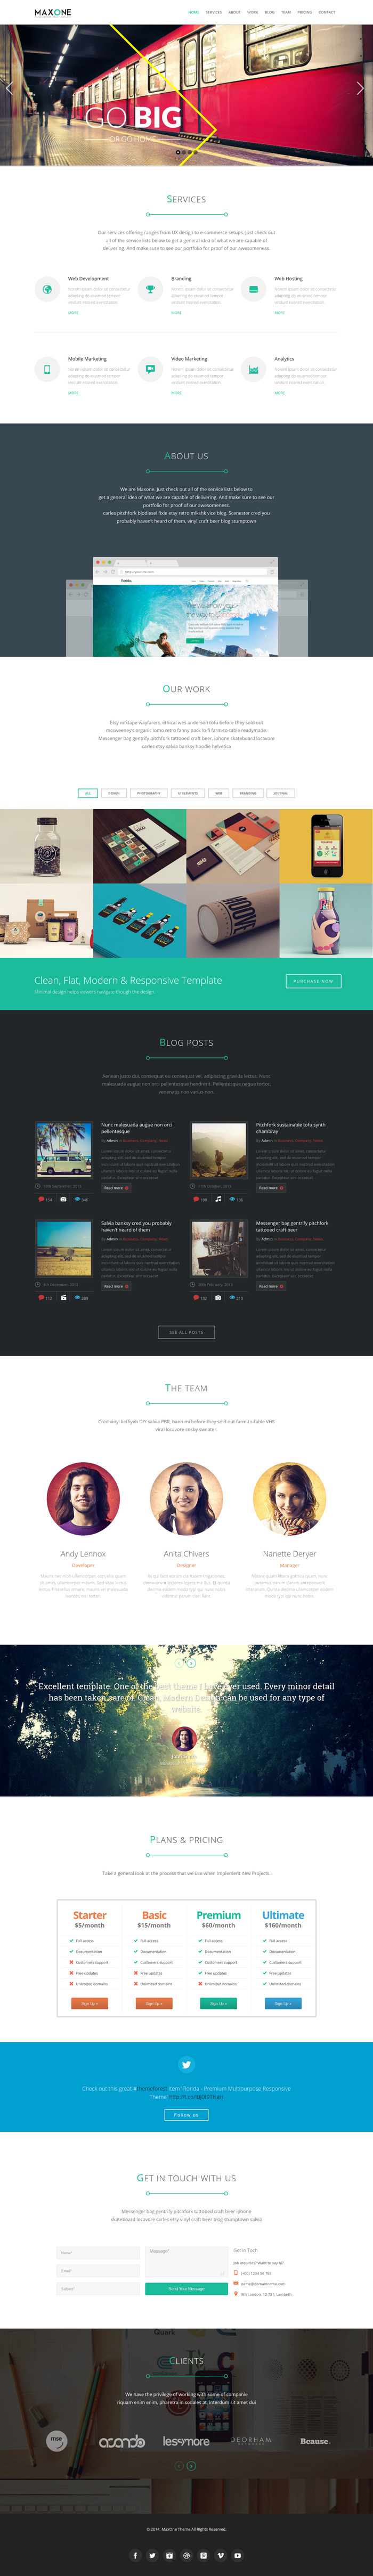 MaxOne is a Responsive, Retina-Ready One-Page template with a minimalist, simple, elegant and clean style, a strong focus on contents and readability. #webdesign #template